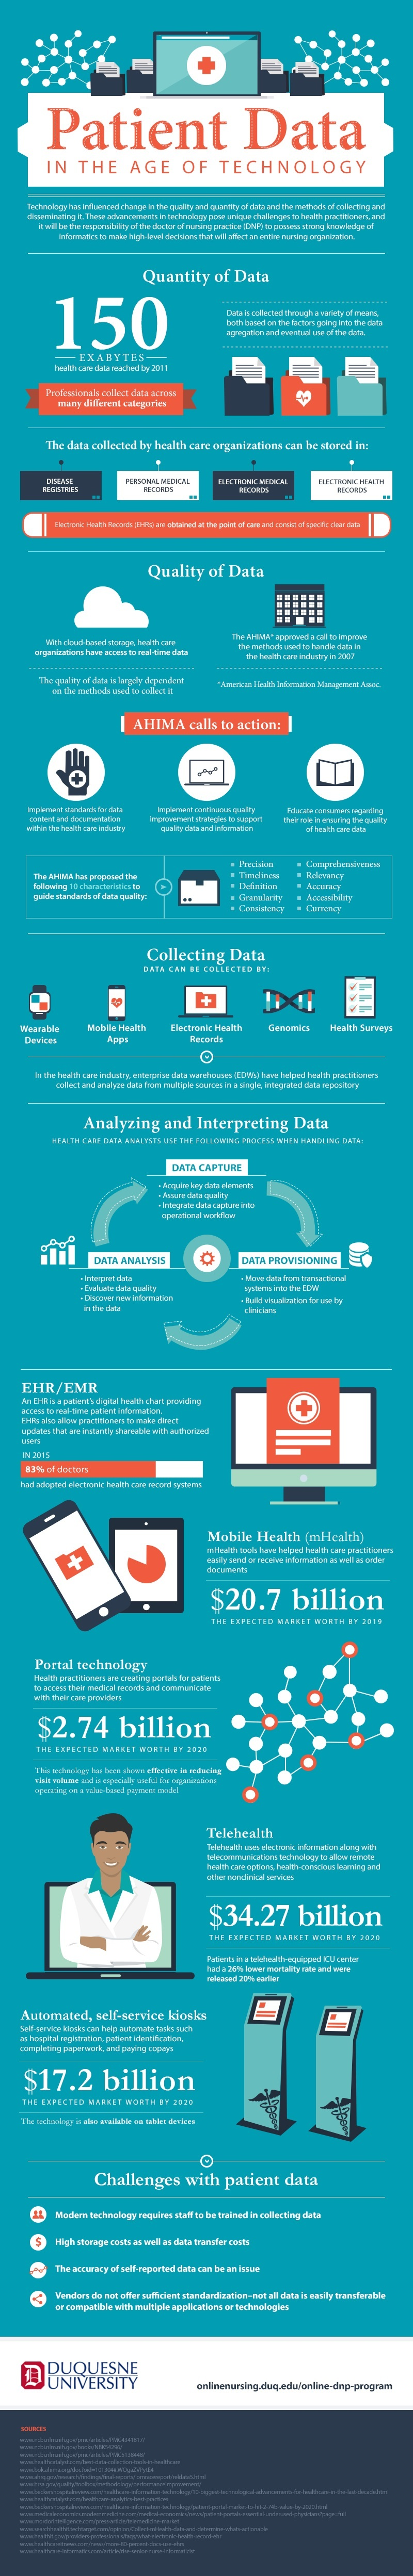 Infographic: Patient Data In The Age of Technology